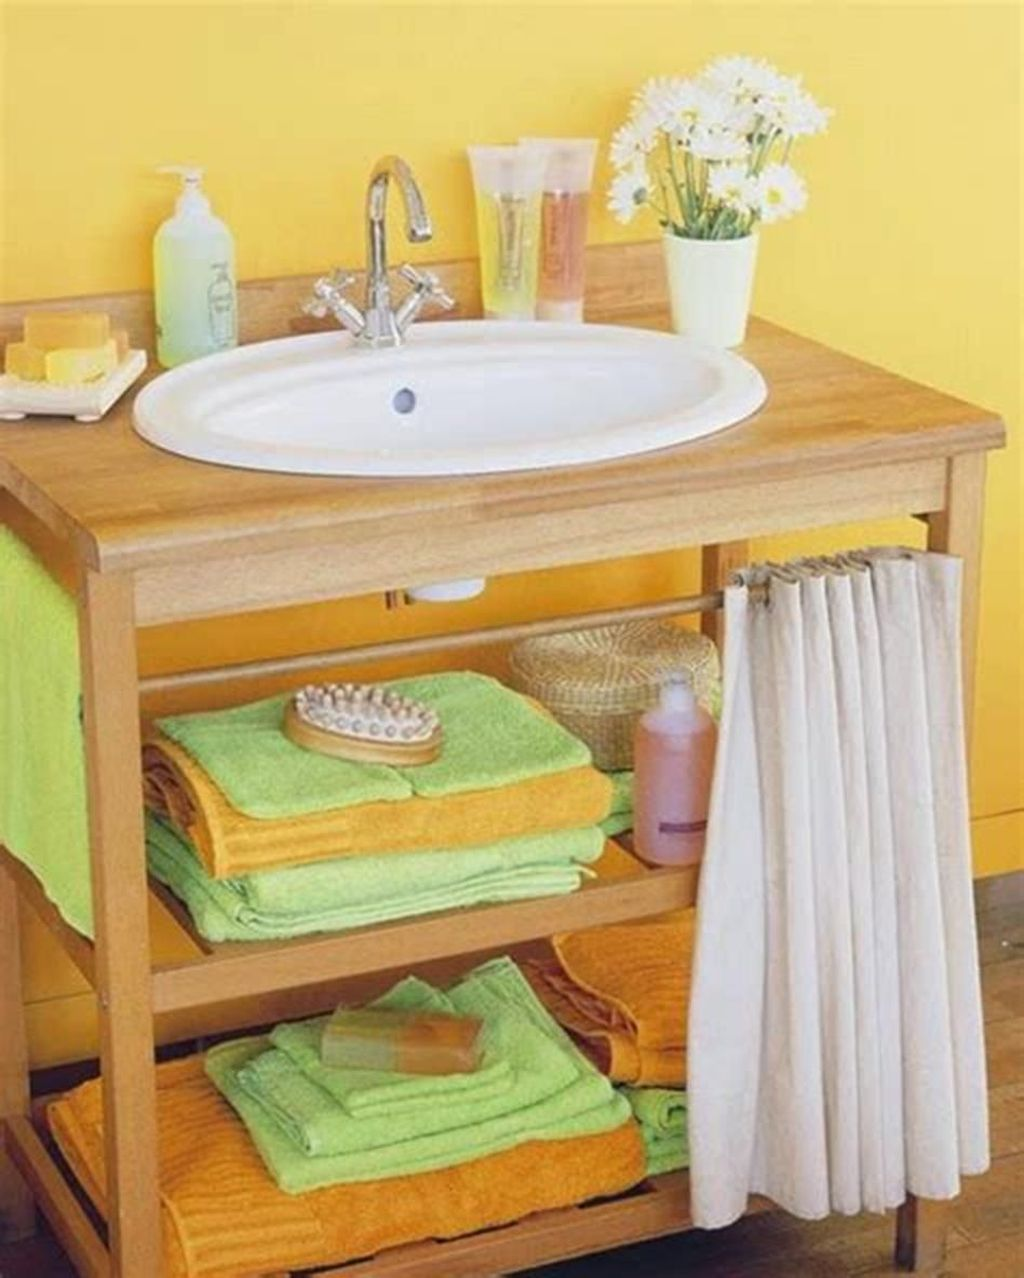 Amazing Bathroom Storage Design Ideas For Small Space 07